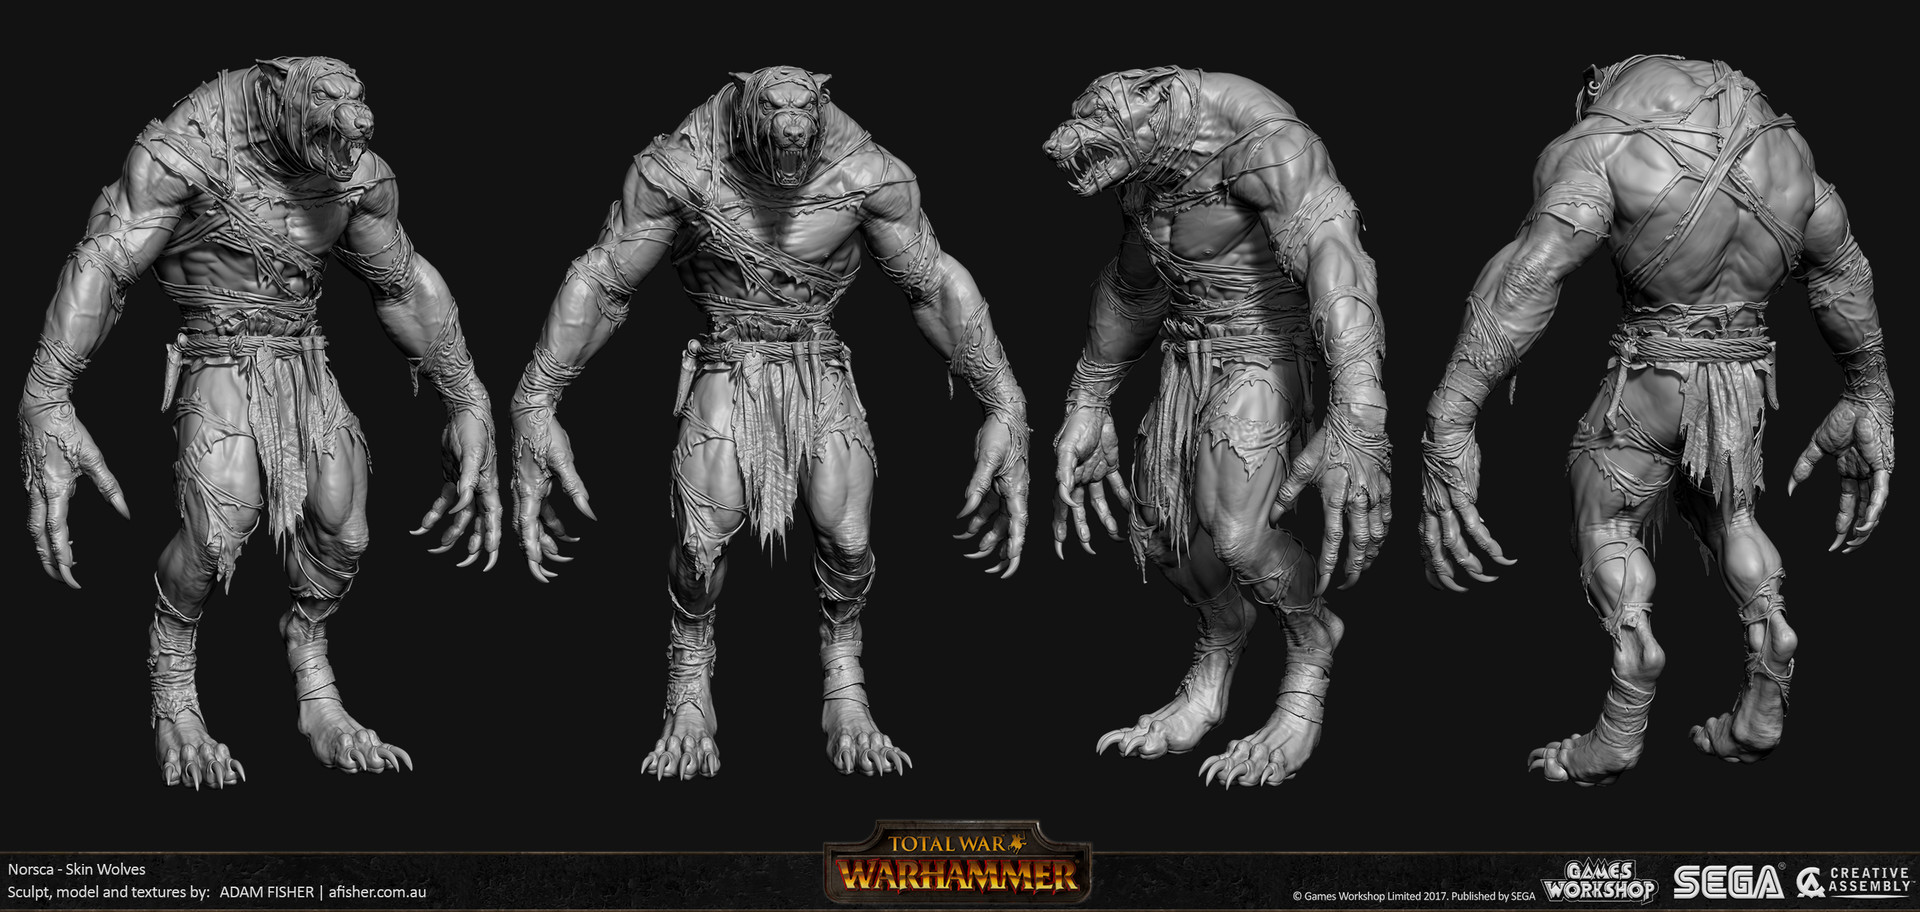 Adam fisher afisher norsca skin wolves hp